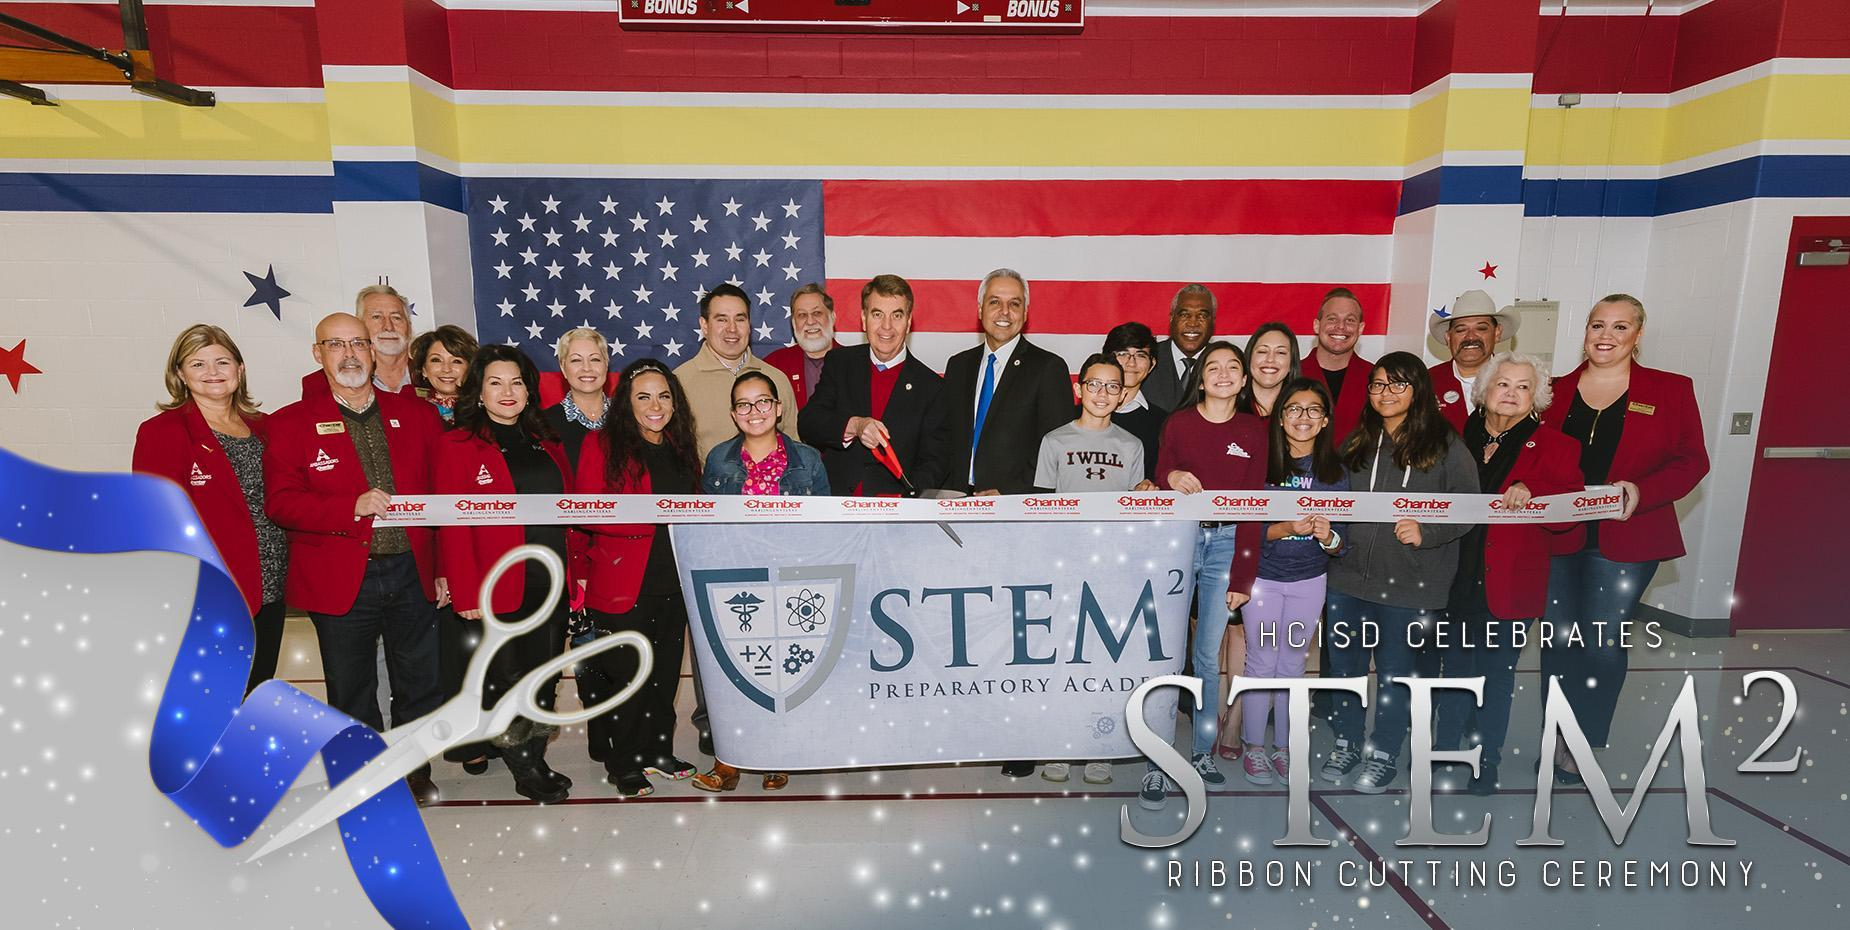 HCISD celebrates STEM2 Ribbon Cutting Ceremony